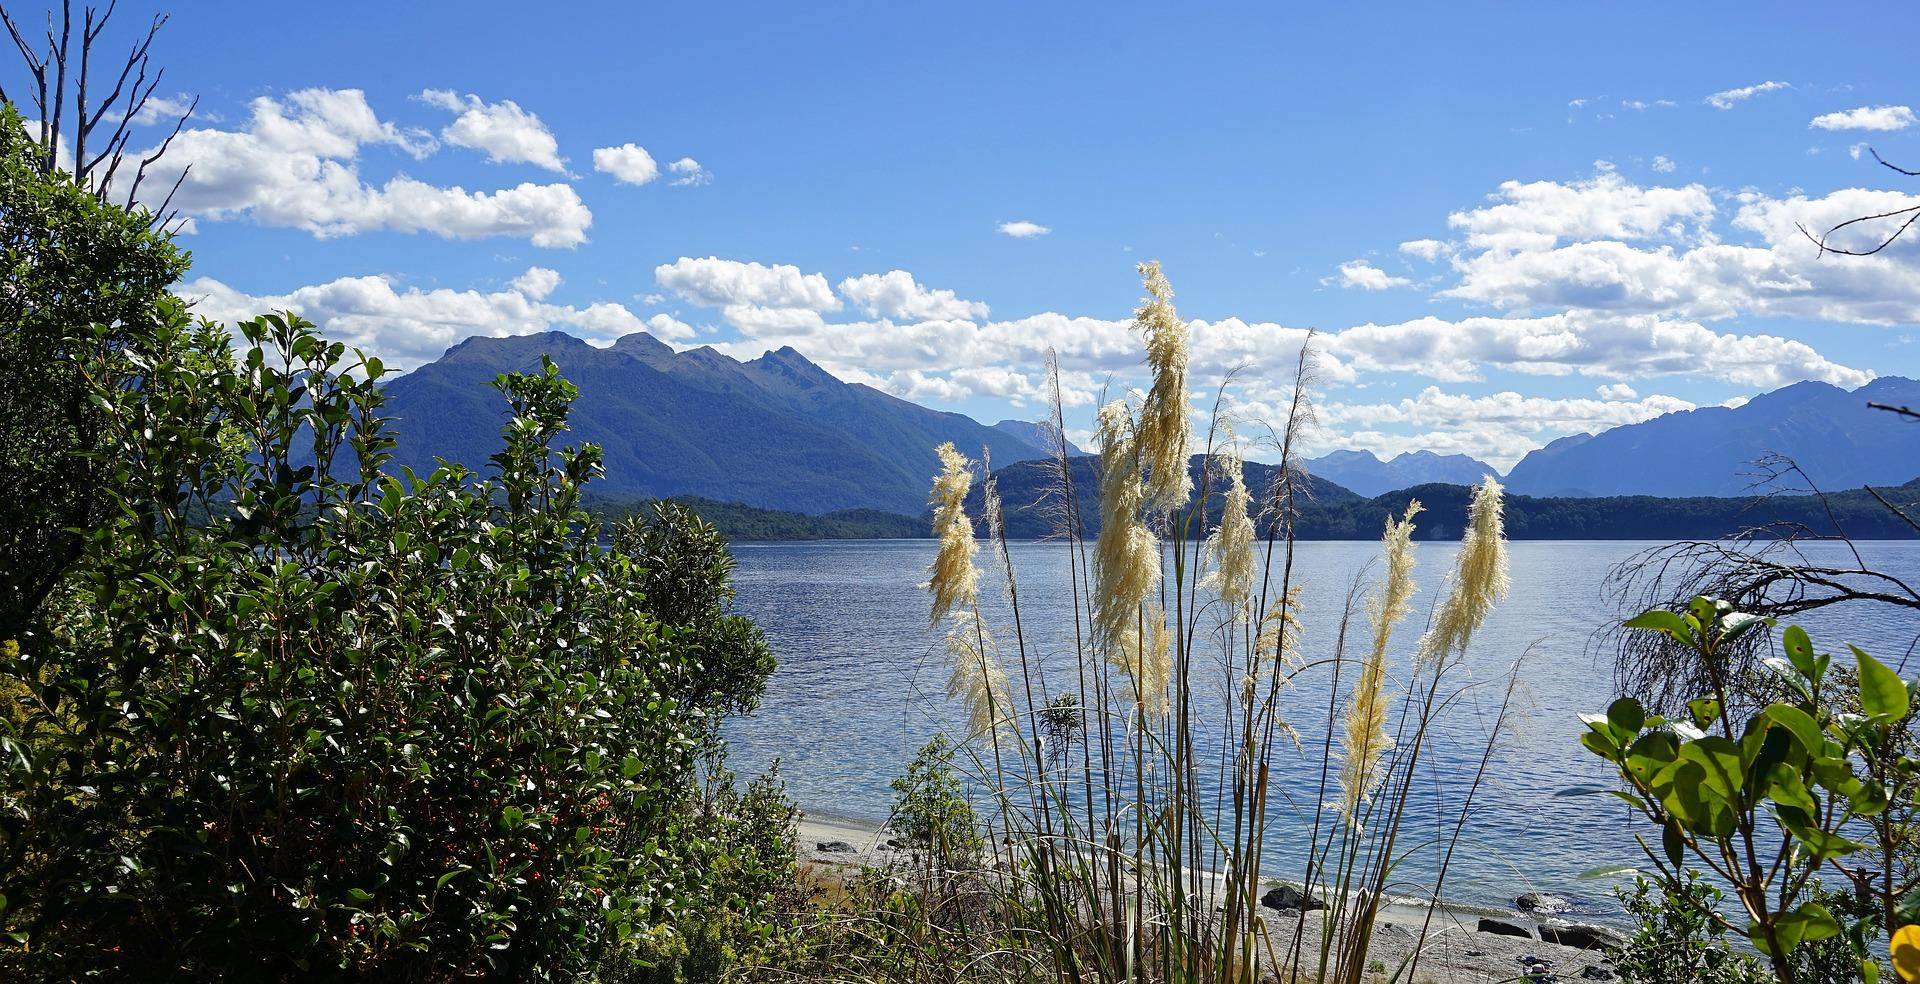 Lake Te Anau, New Zealand